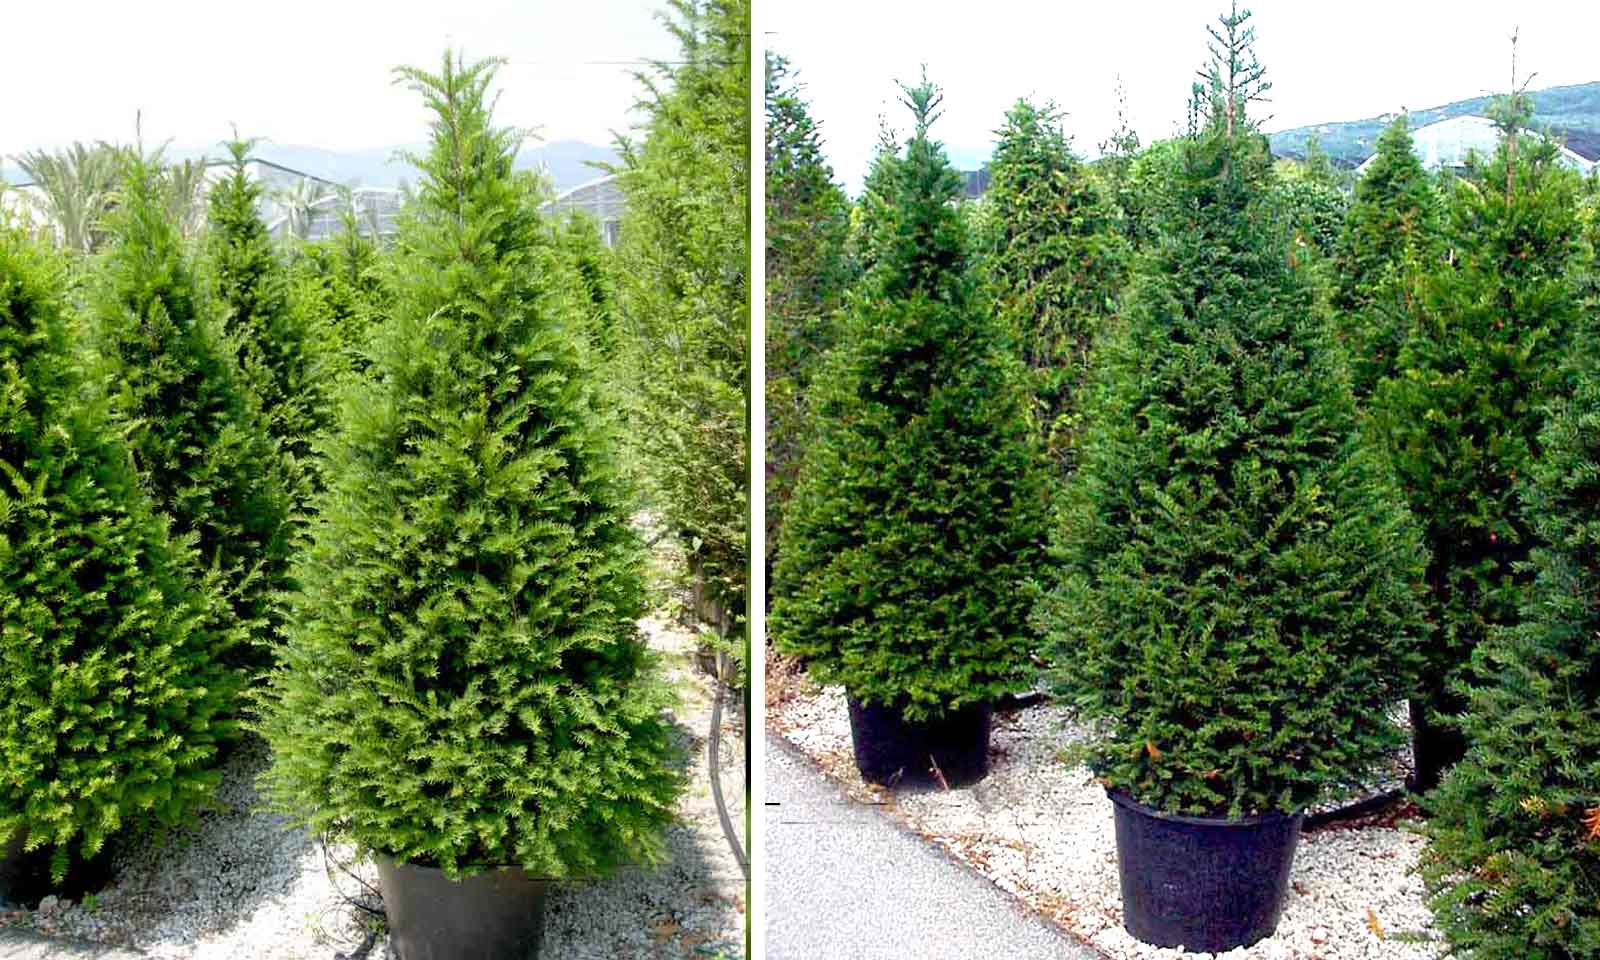 Taxus Baccata (English yew) – Cone